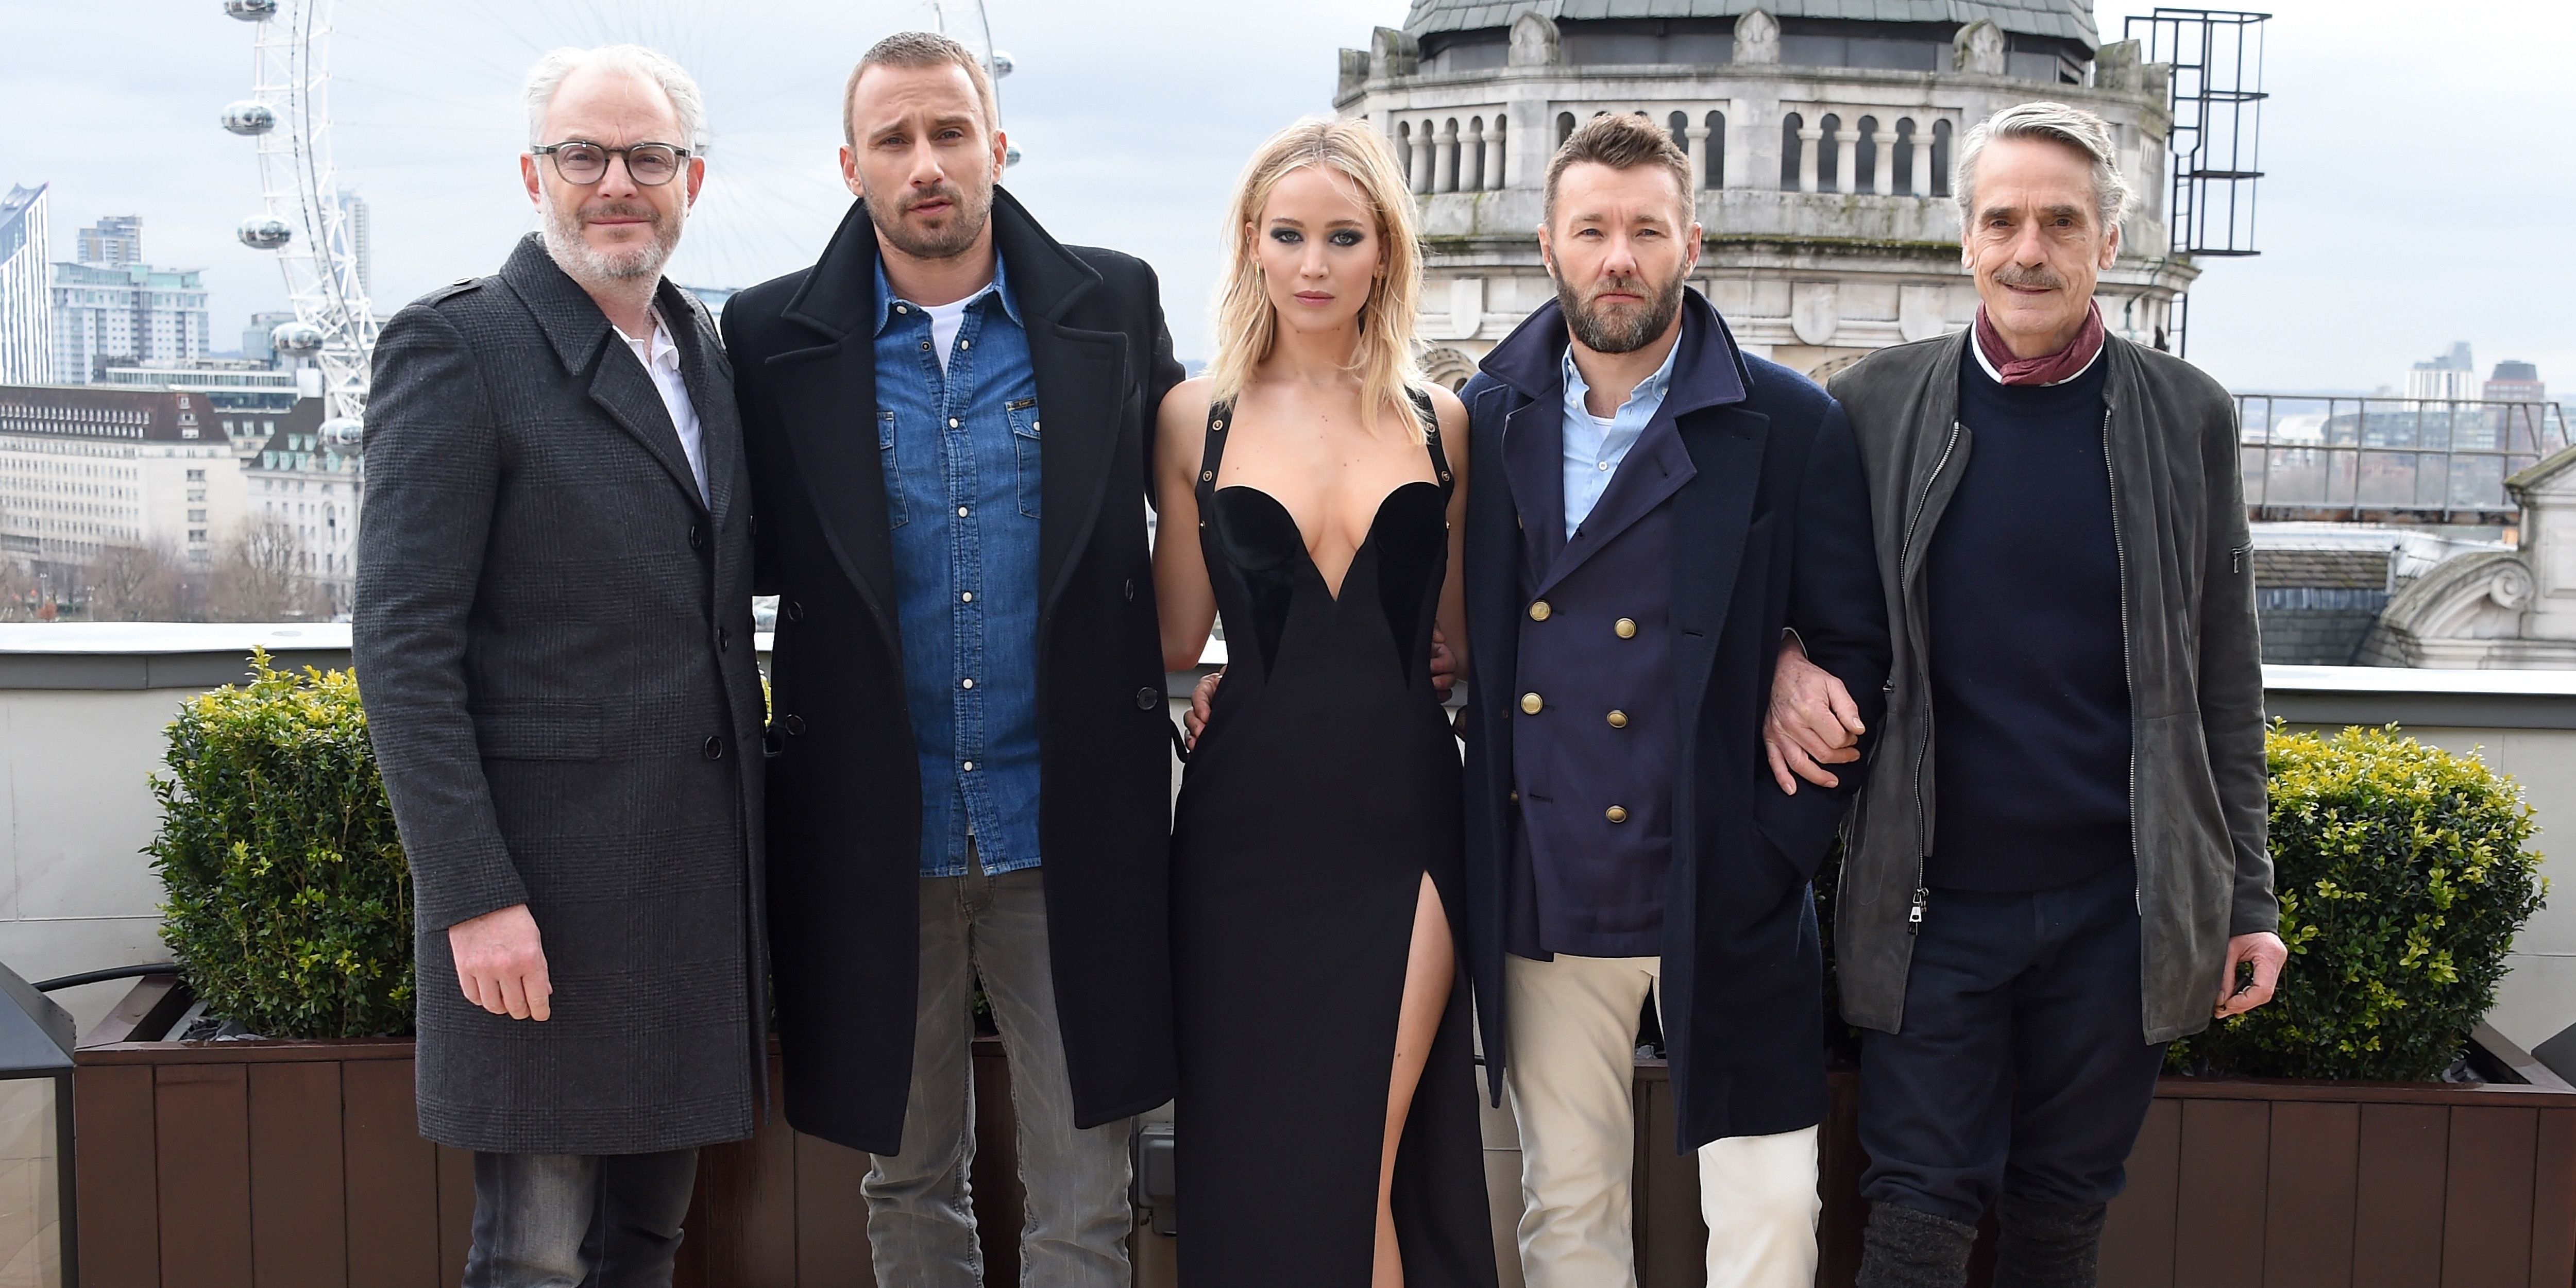 Jennifer Lawrence's Latest 'Red Sparrow' Photocall Has Twitter Calling Out  Gender Inequality